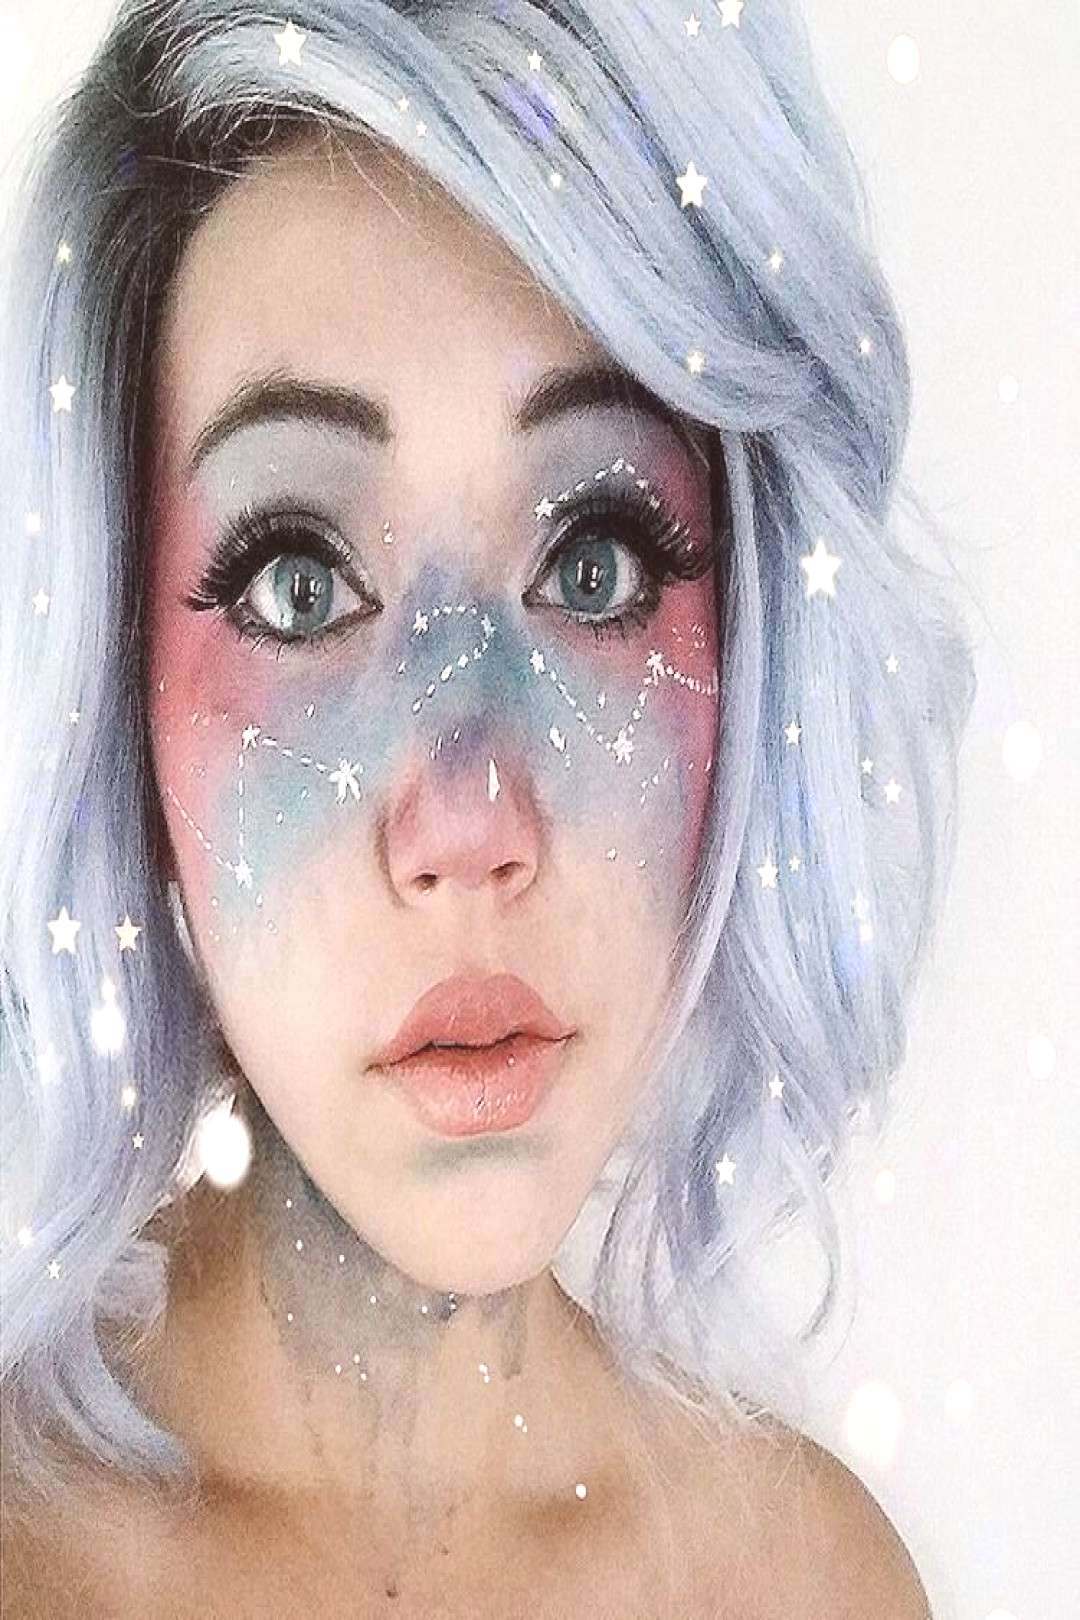 Galaxy Face Makeup Creates the Swirling Cosmos Across the Skin